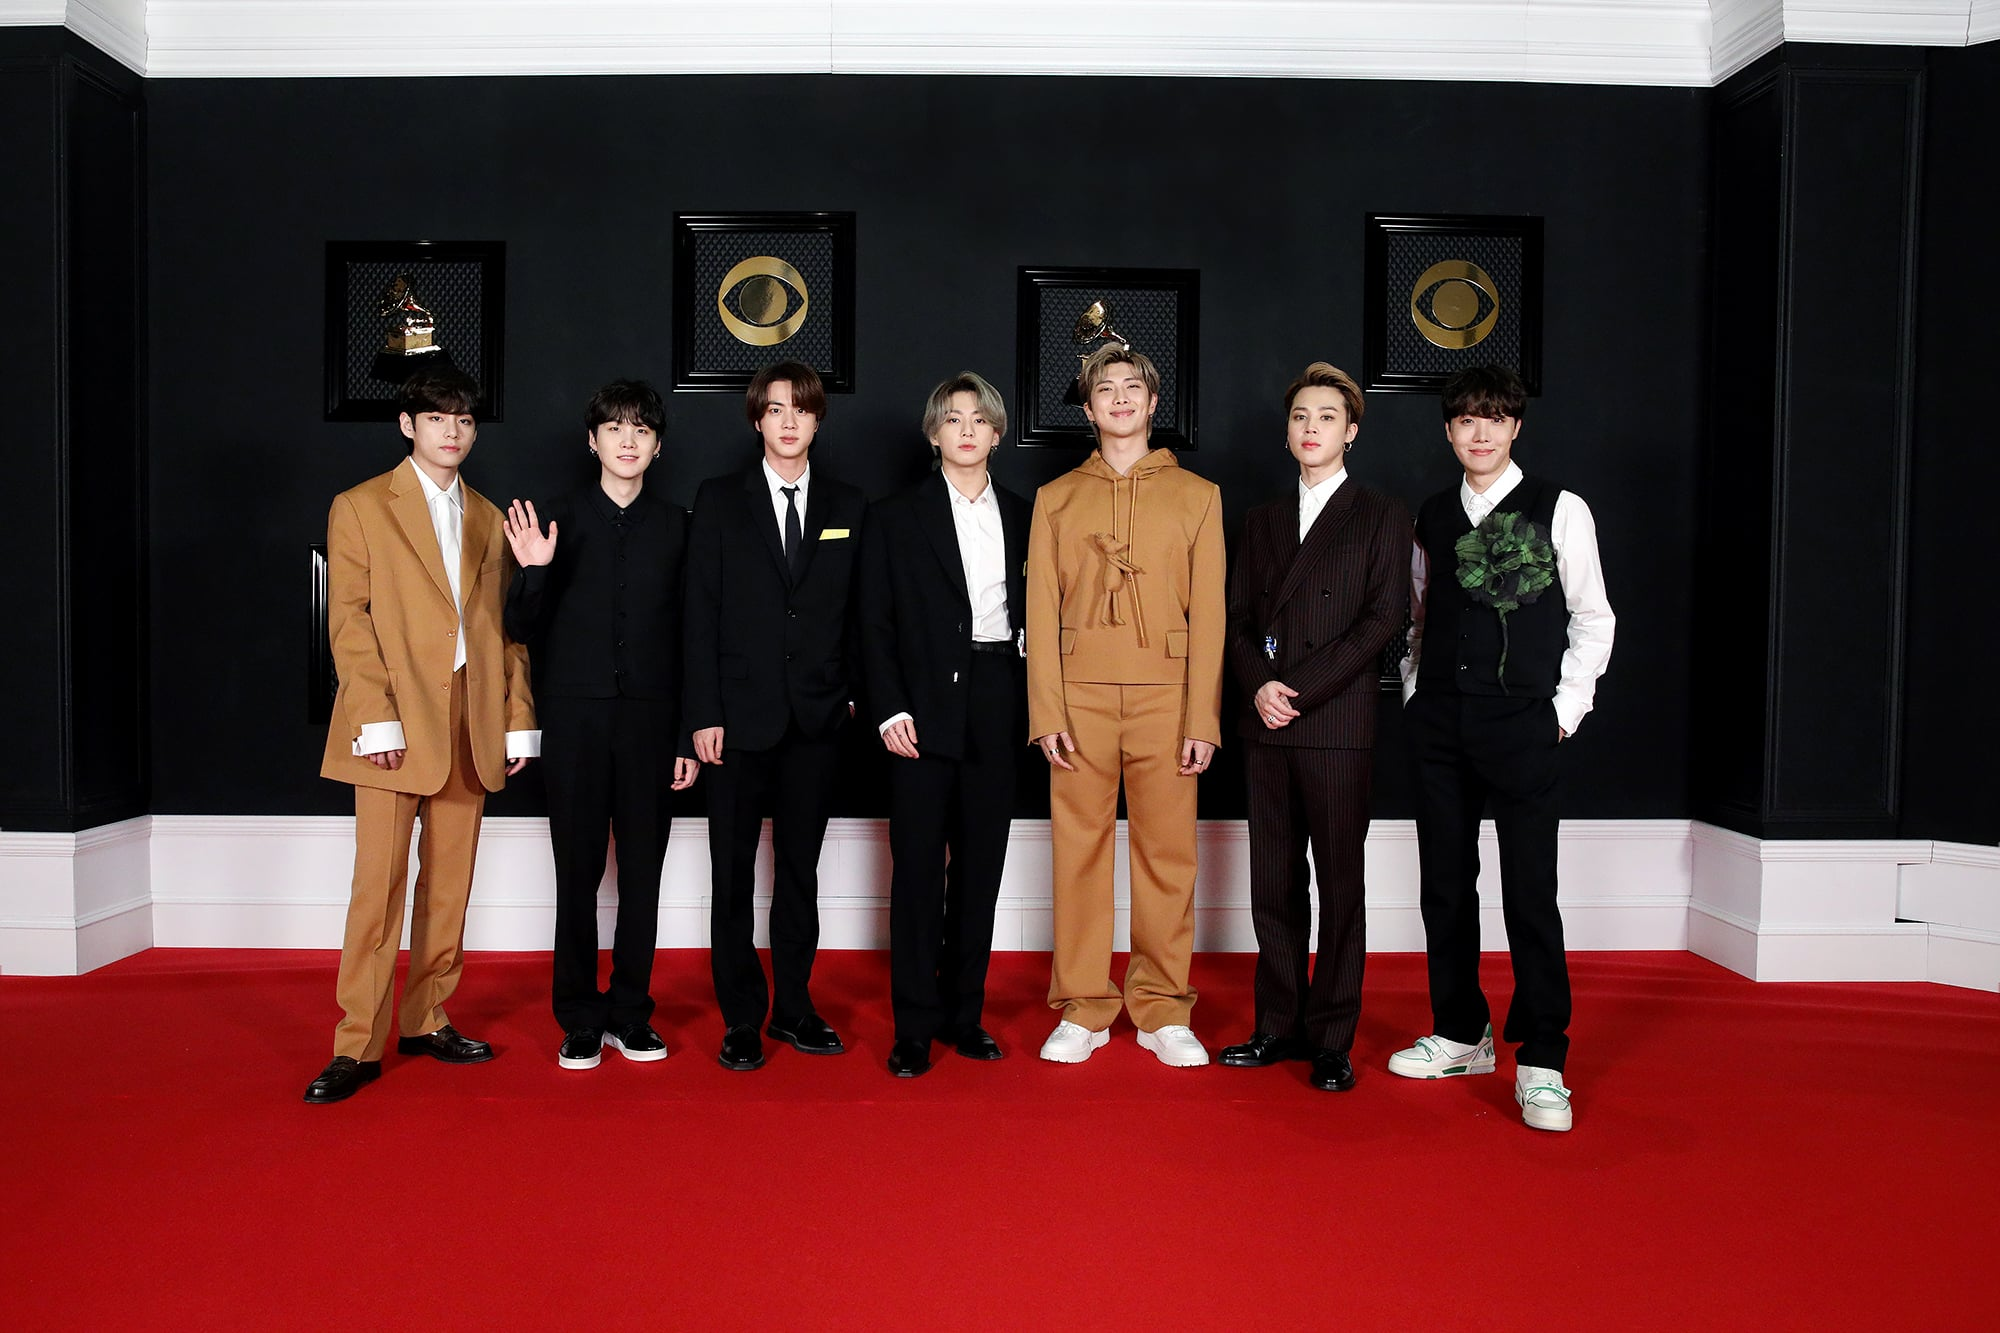 BTS at the 2021 Grammy Awards | A Stylish, Star-Packed Grammys Red Carpet Is Music to Our Ears | POPSUGAR Fashion Photo 8